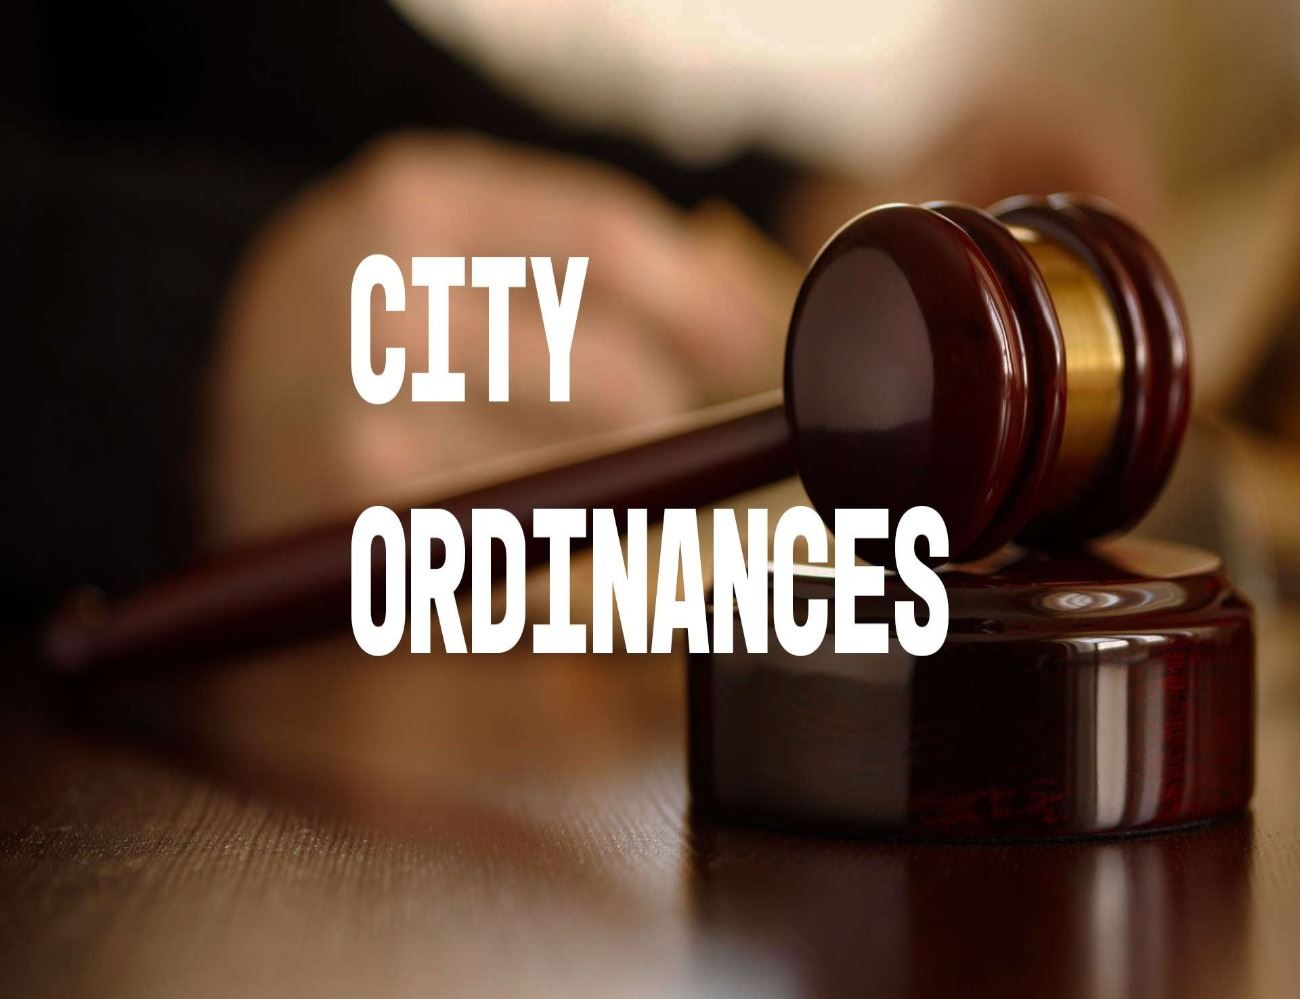 Image of City Ordinances